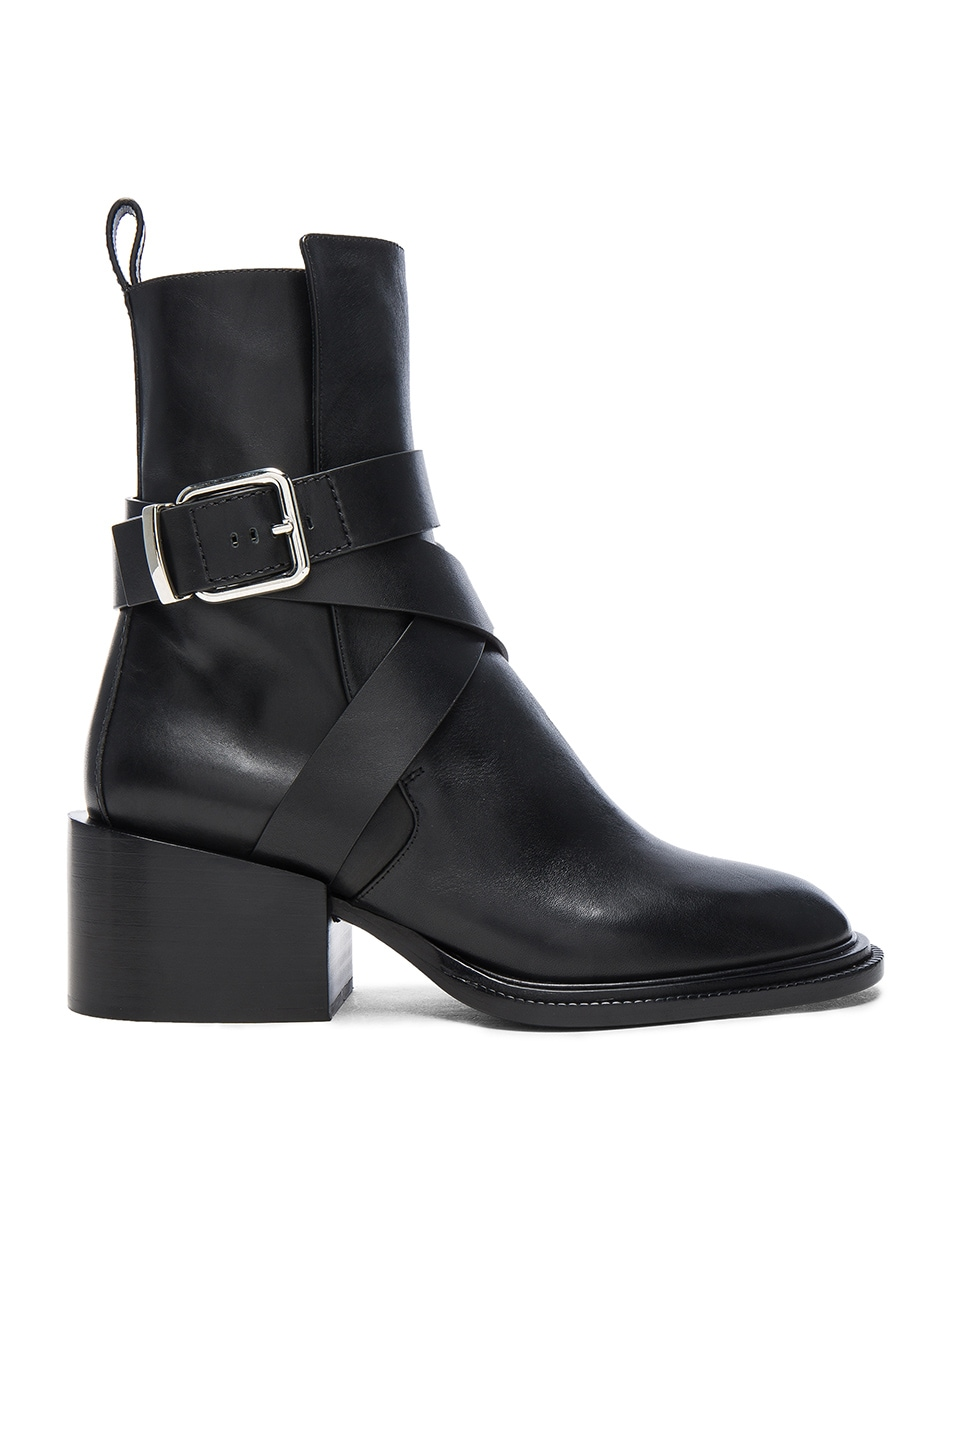 Image 1 of Jil Sander Leather Boots in Black